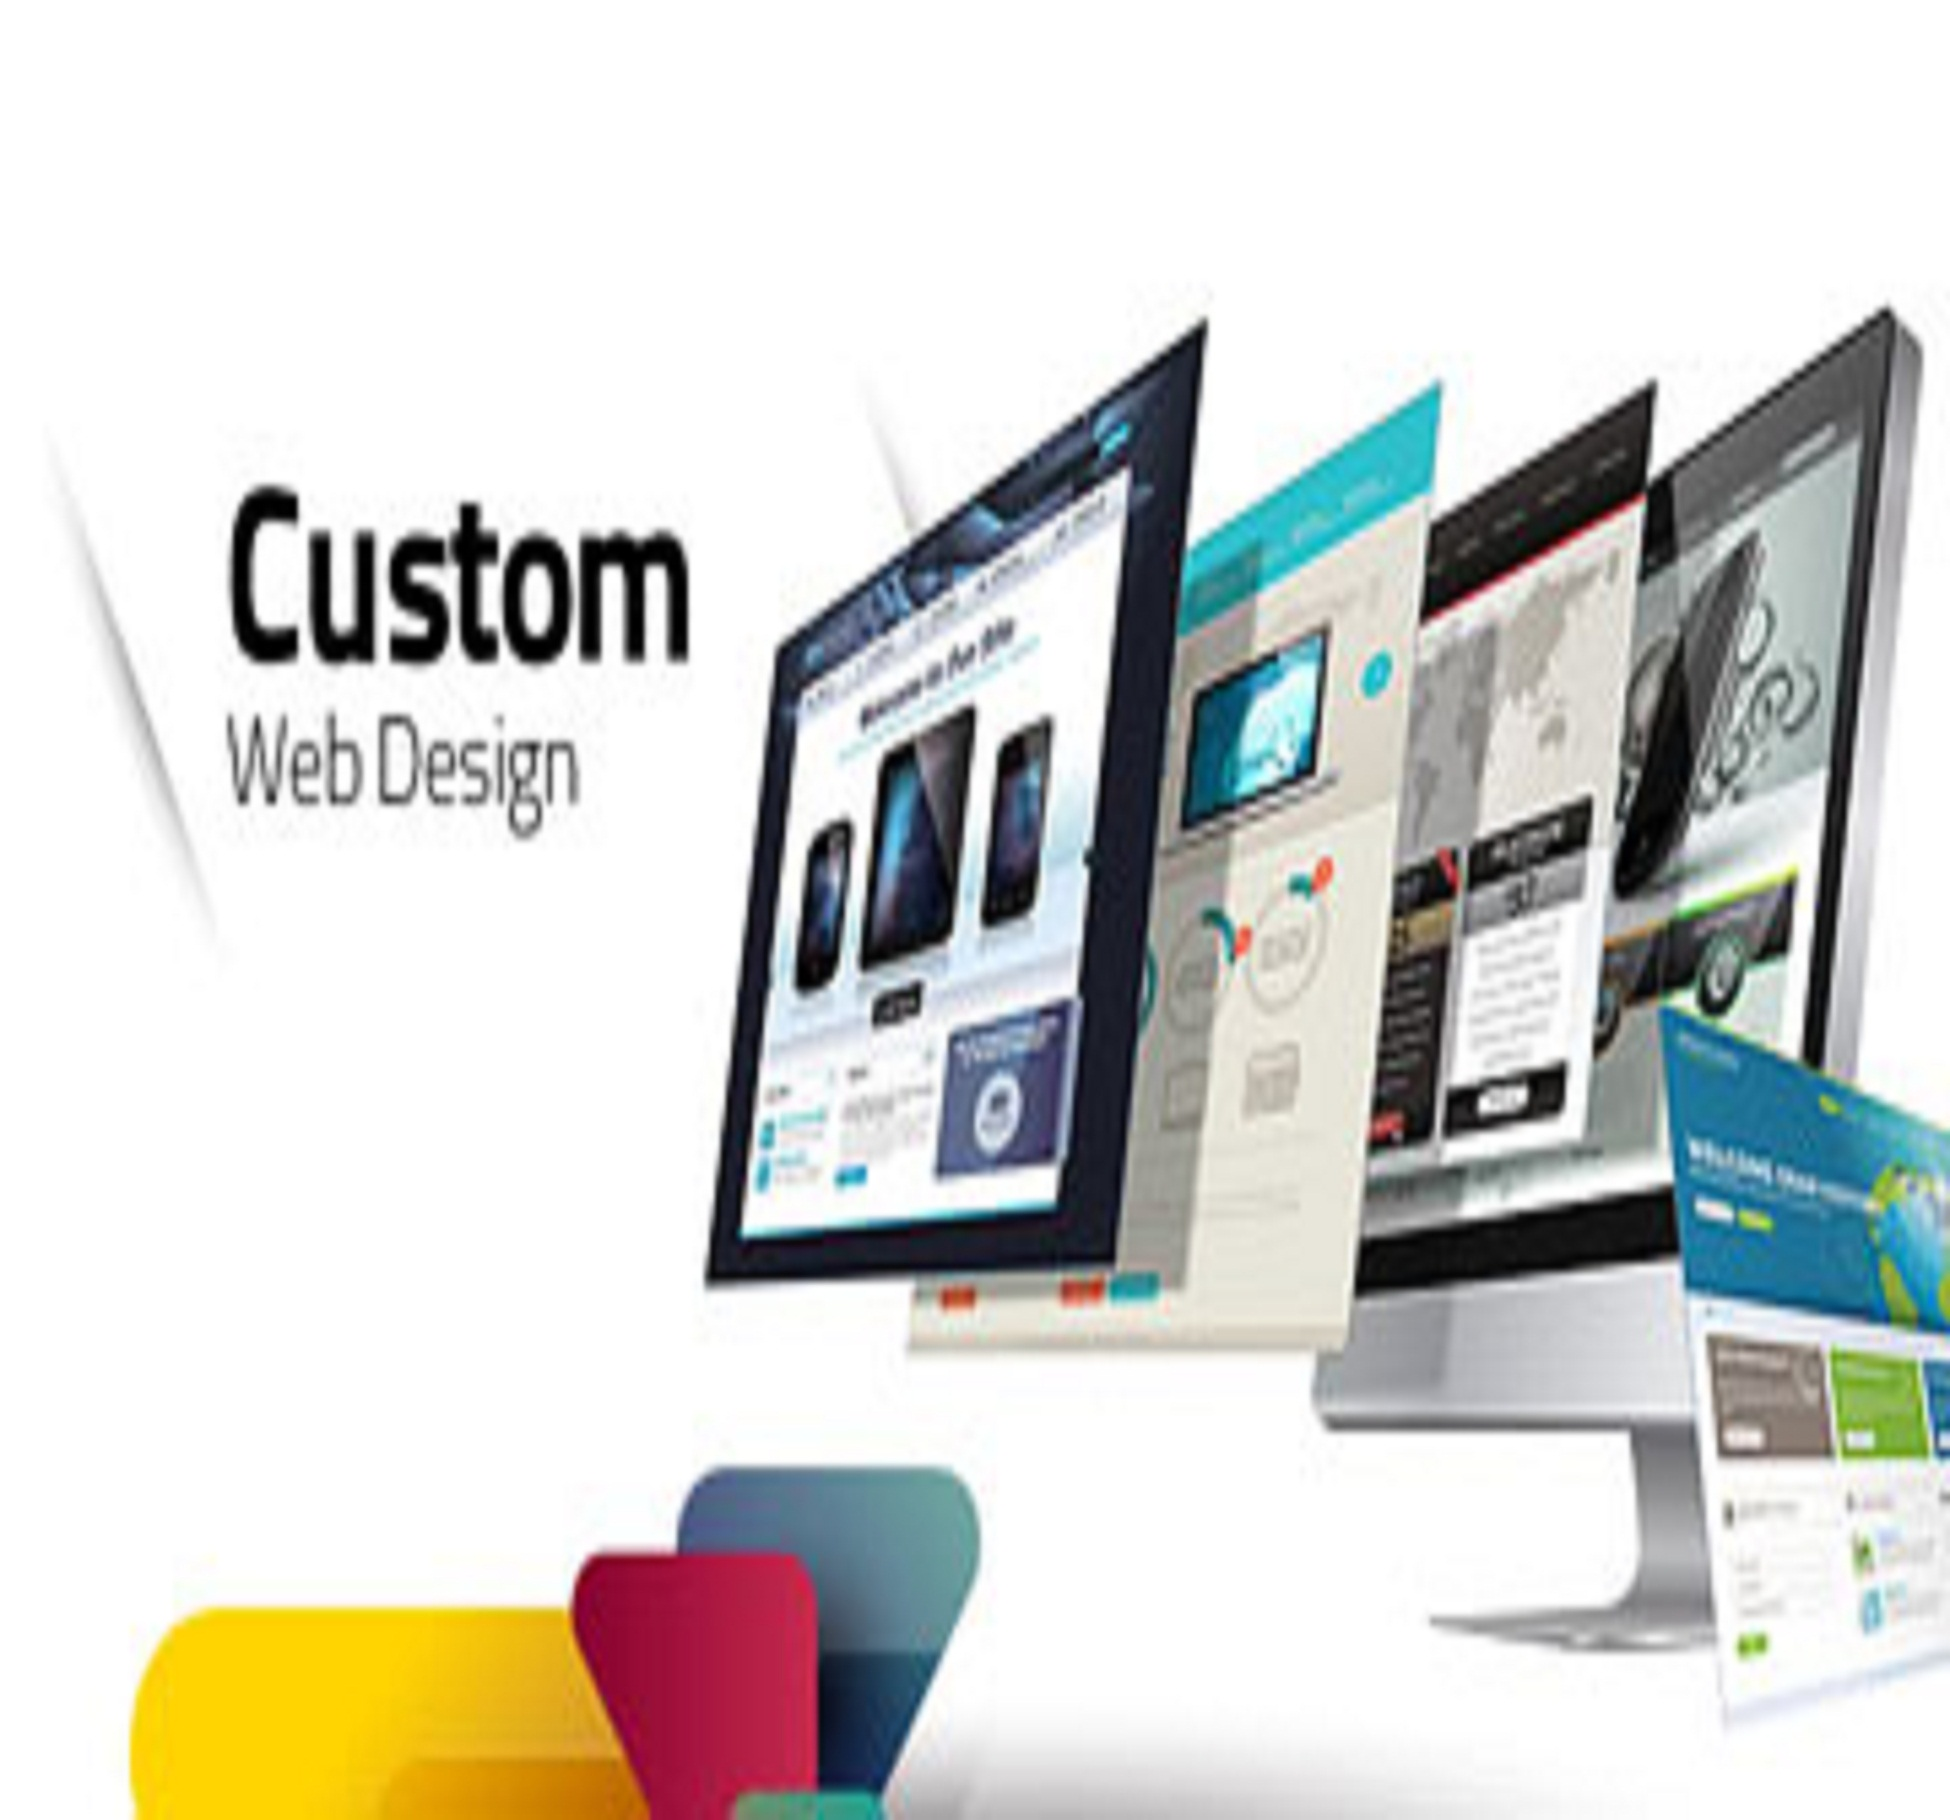 Hd Love Wallpapers For Mobile Free Download Free Stock Photo Of Custom Website Designing Company Usa